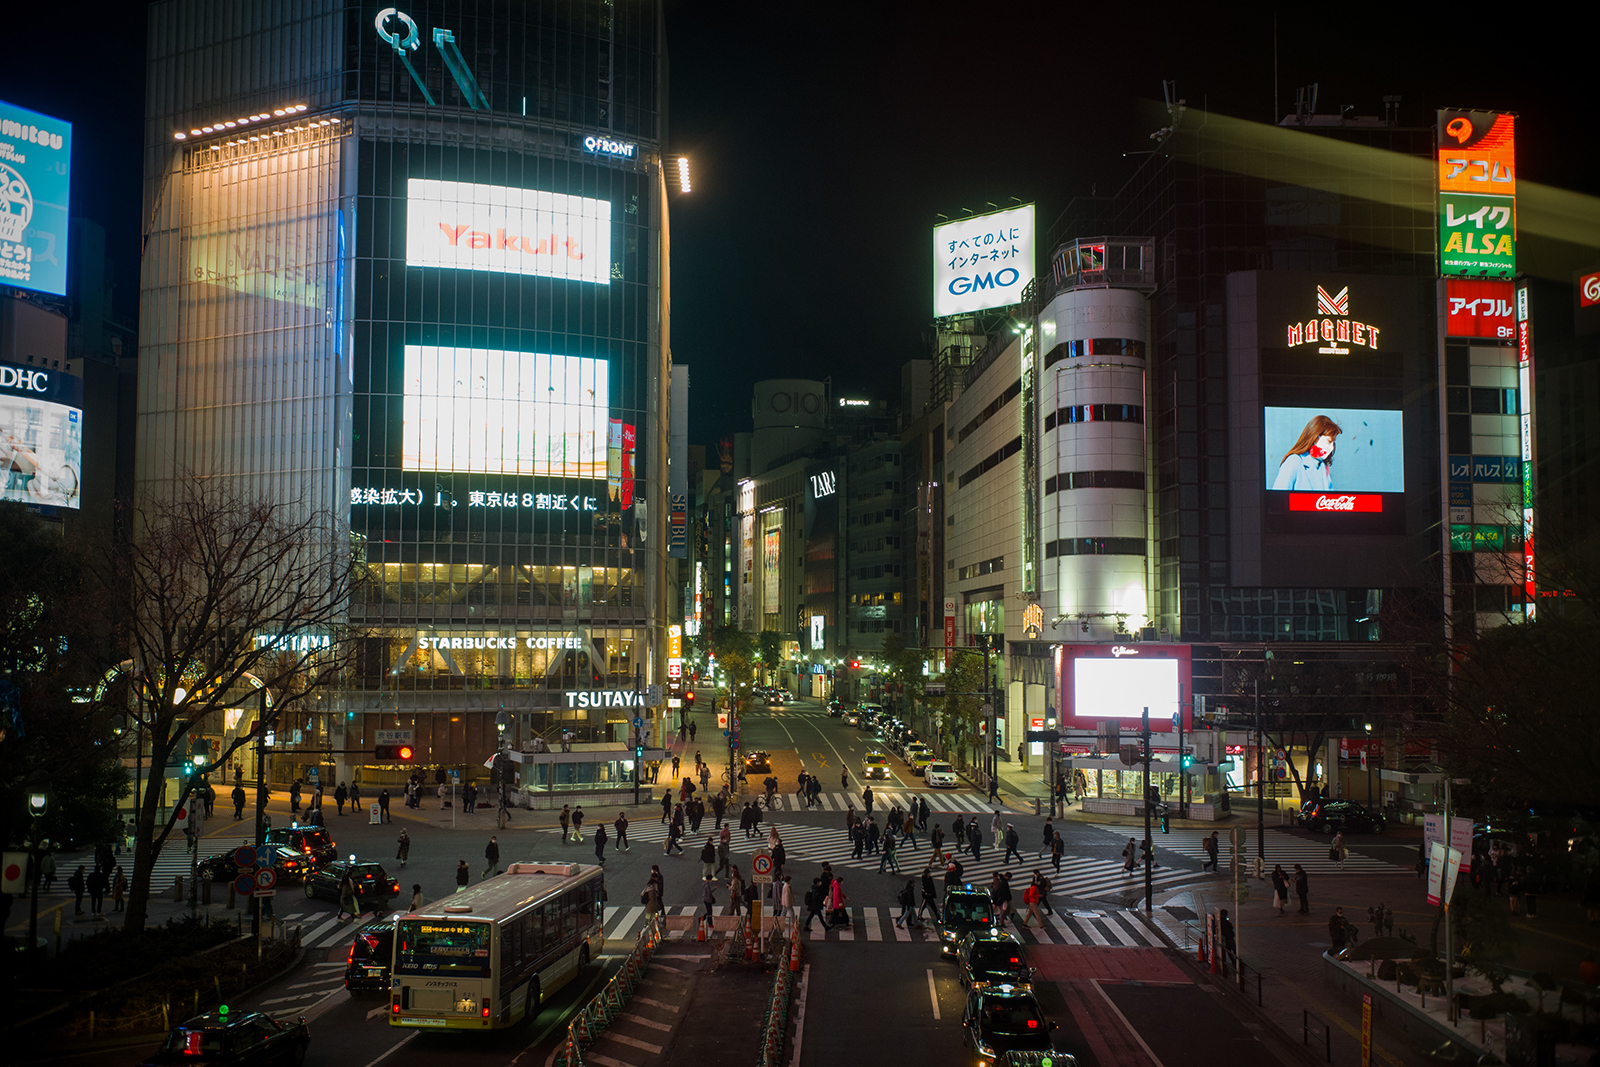 Pedestrians cross an intersection in the Shibuya district of Tokyo, on January 8.